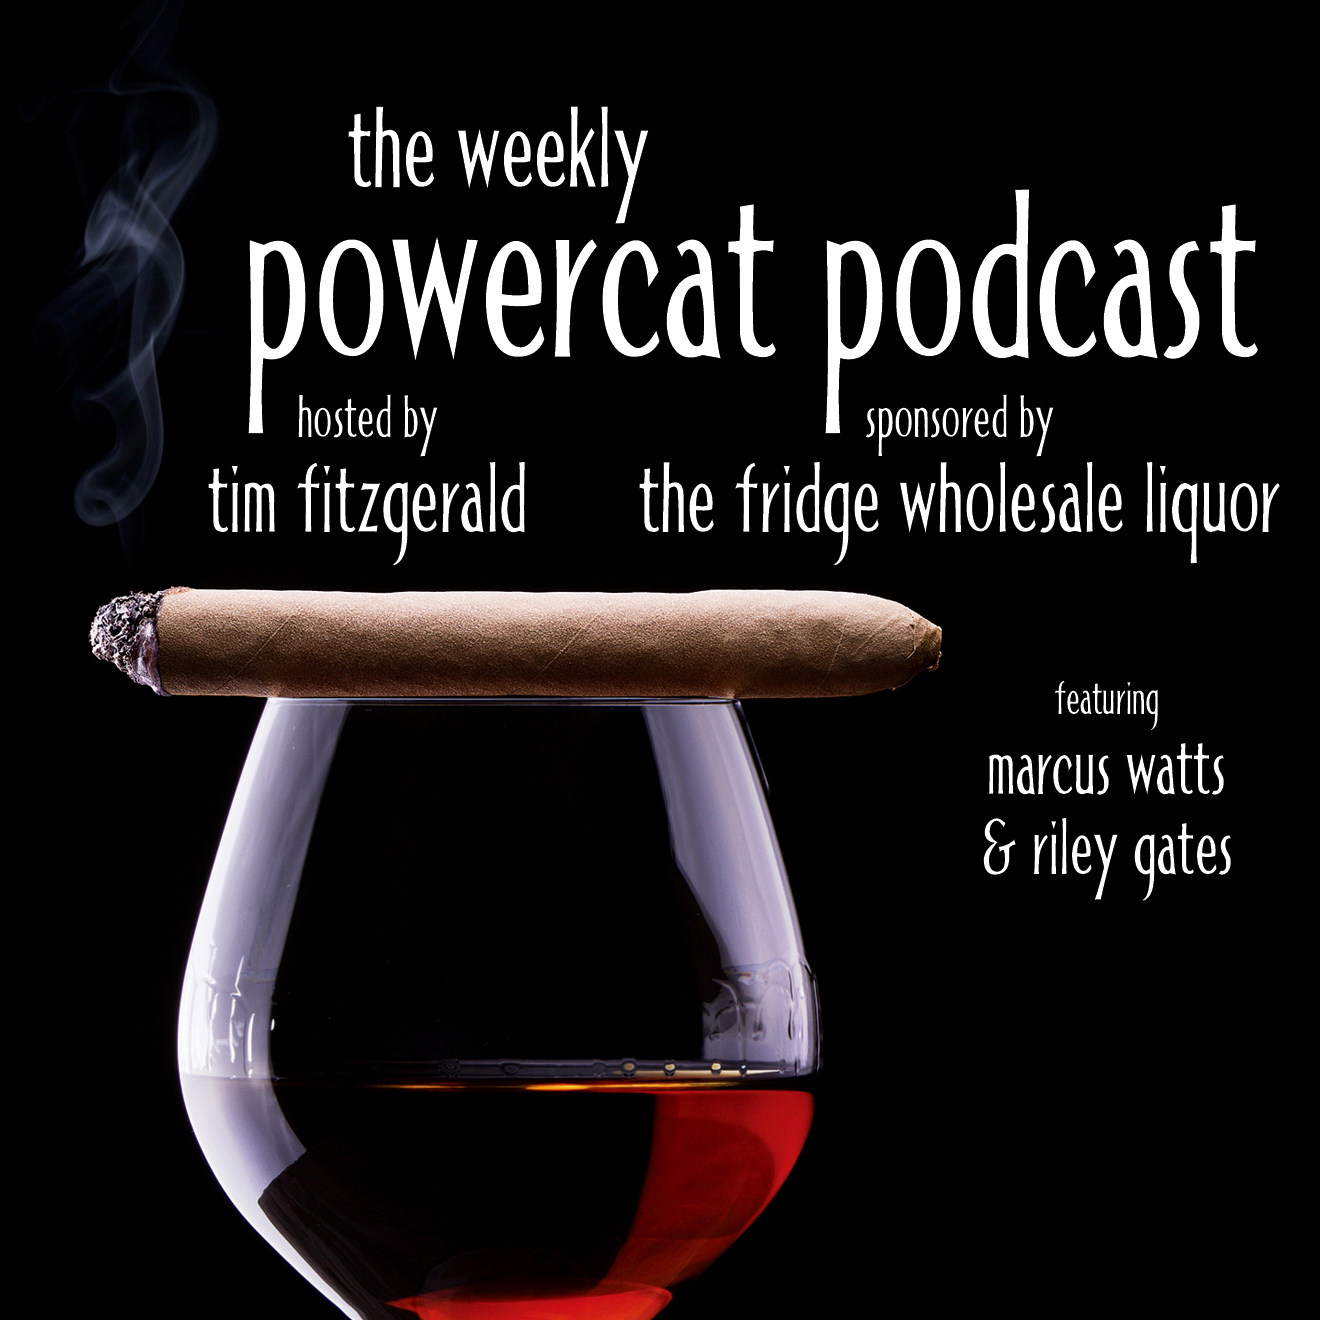 The Powercat Podcast 10.12.16